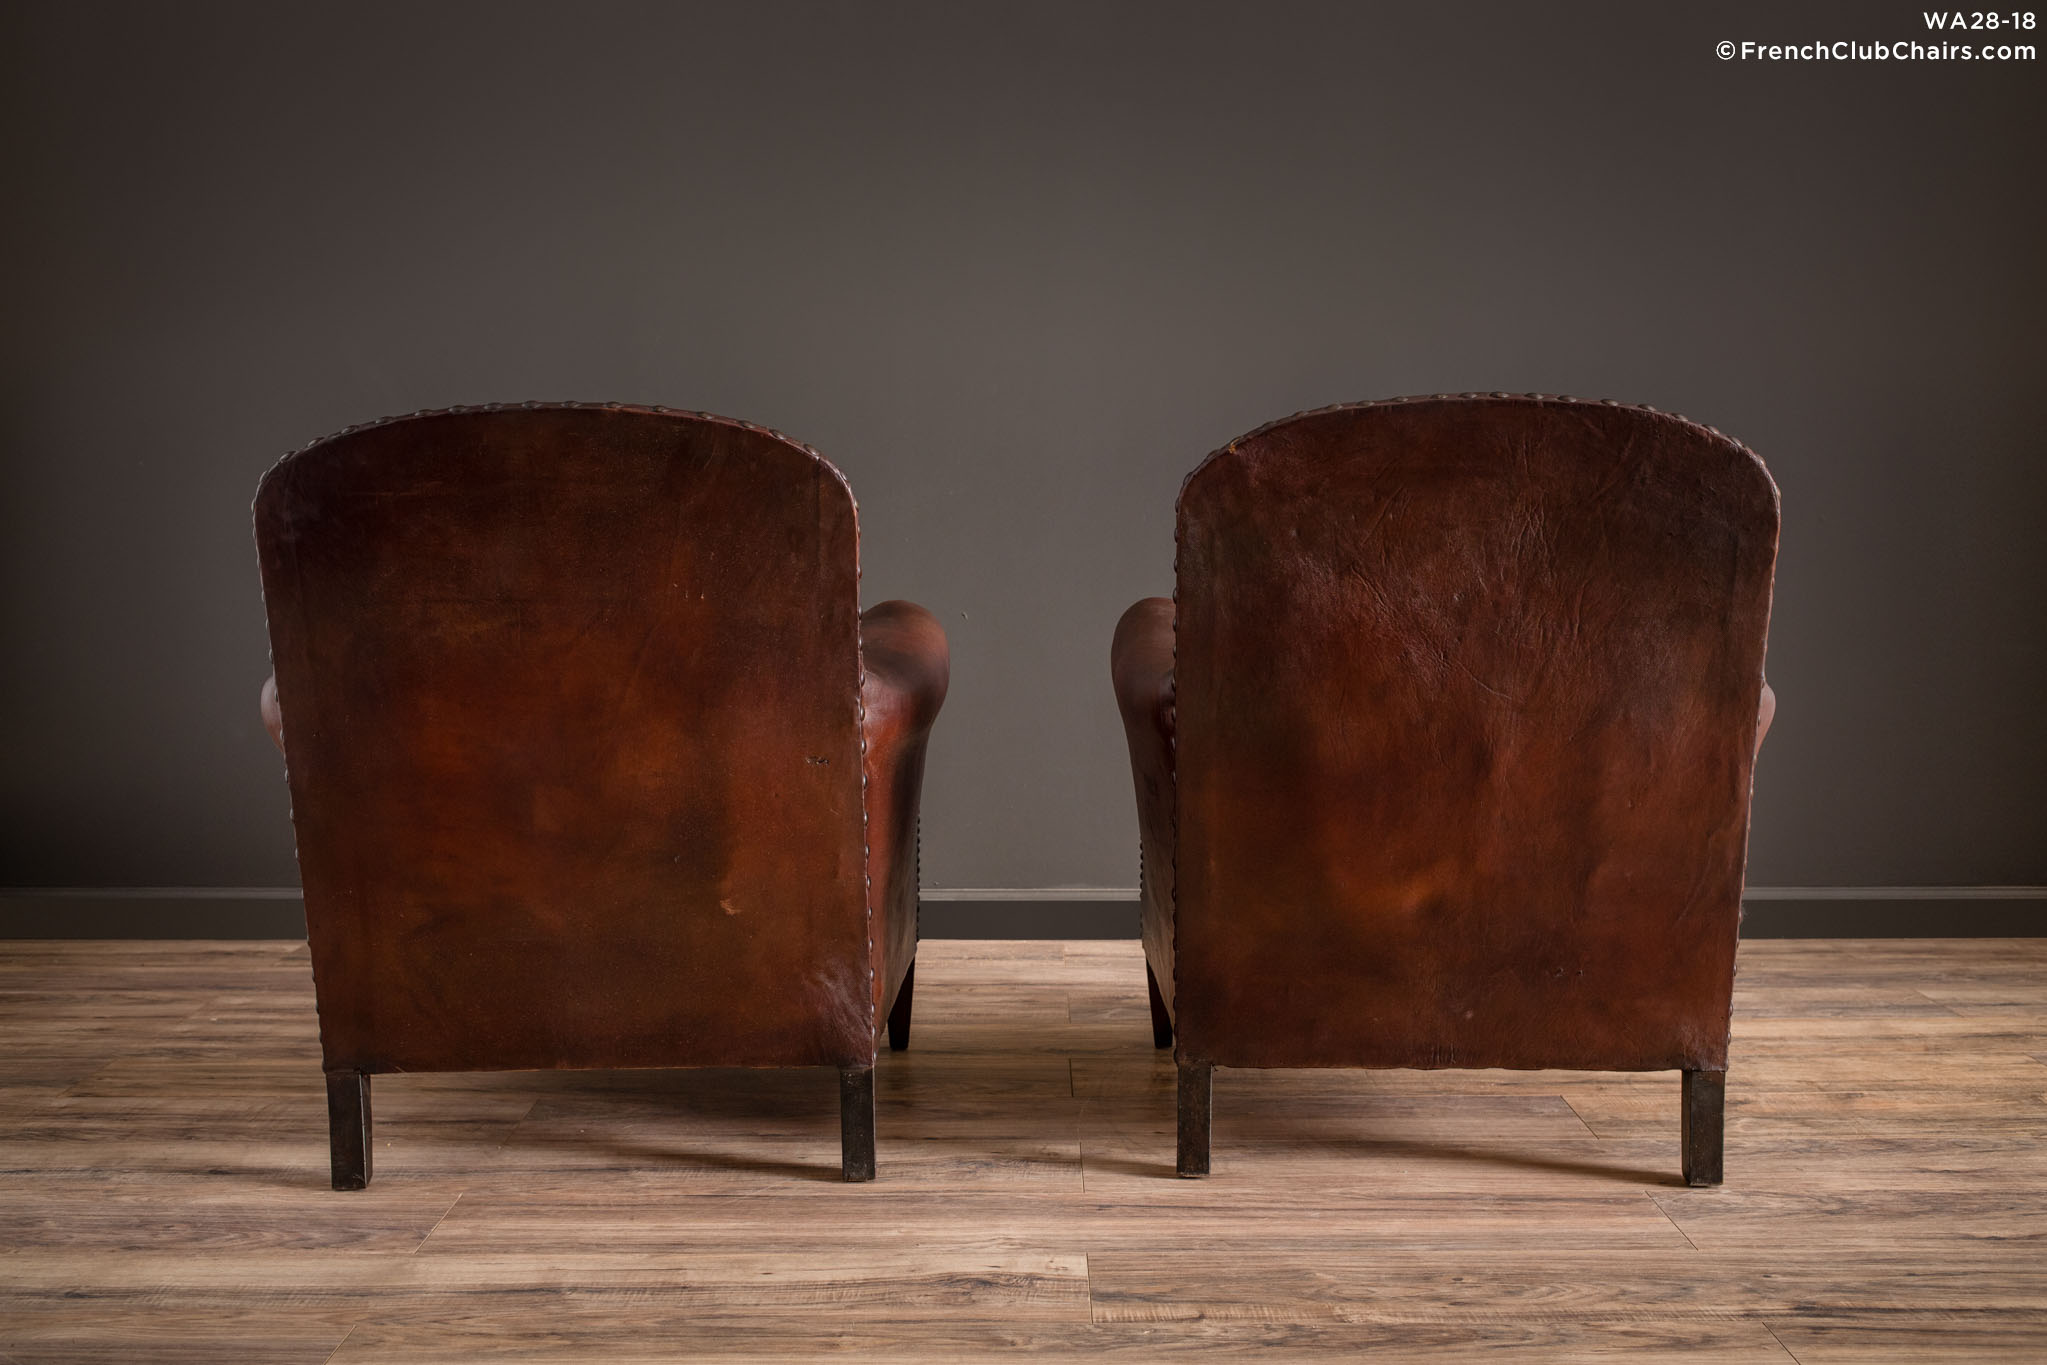 WA_28-18_Rambouillet_Dark_Library_Pair_R_2BK1-williams-antiks-leather-french-club-chair-wa_fcccom